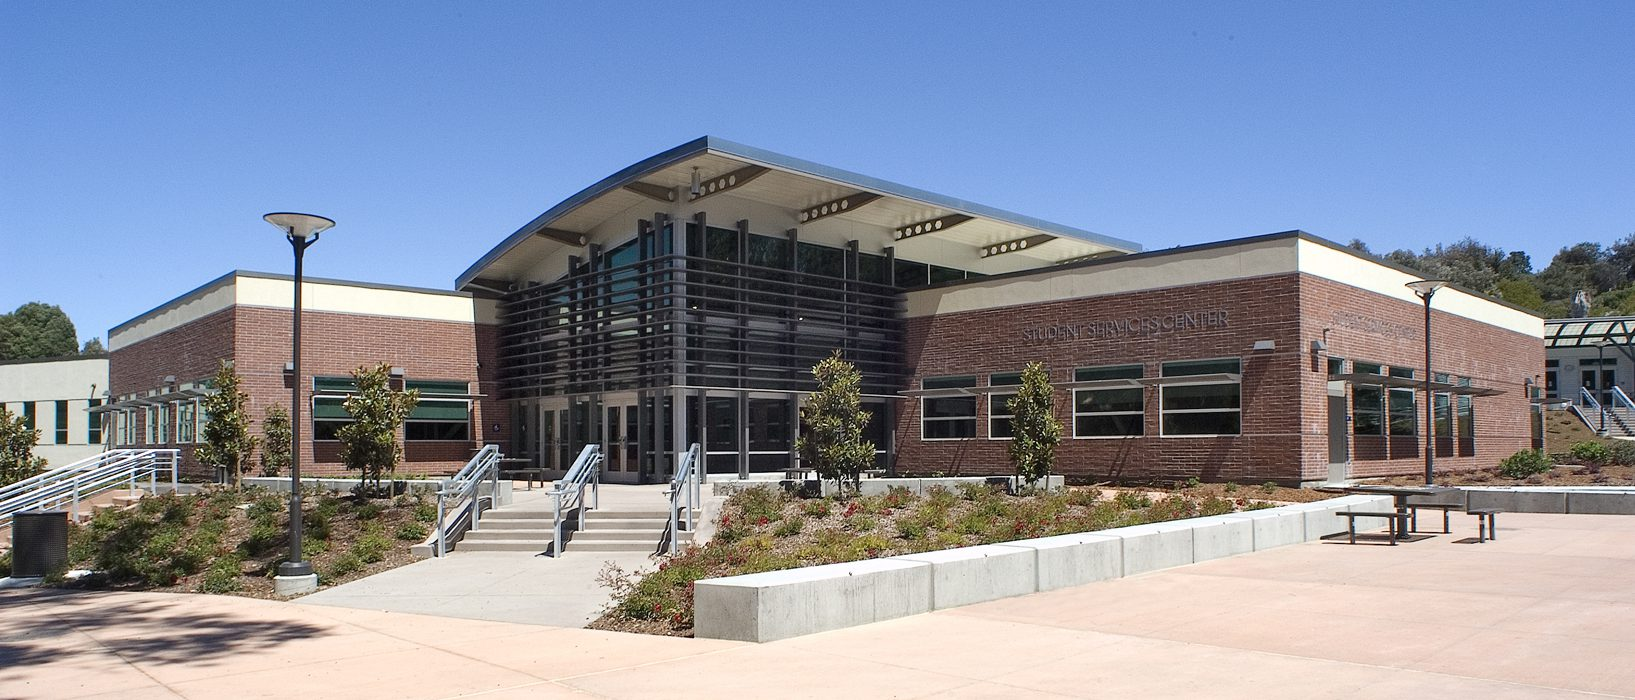 Higher Education, Community College, Contra Costa Community College, architectural, Interactive Resources, interior design, San Pablo, space planning, structural Engineering, Student Services Center, Sustainable Design